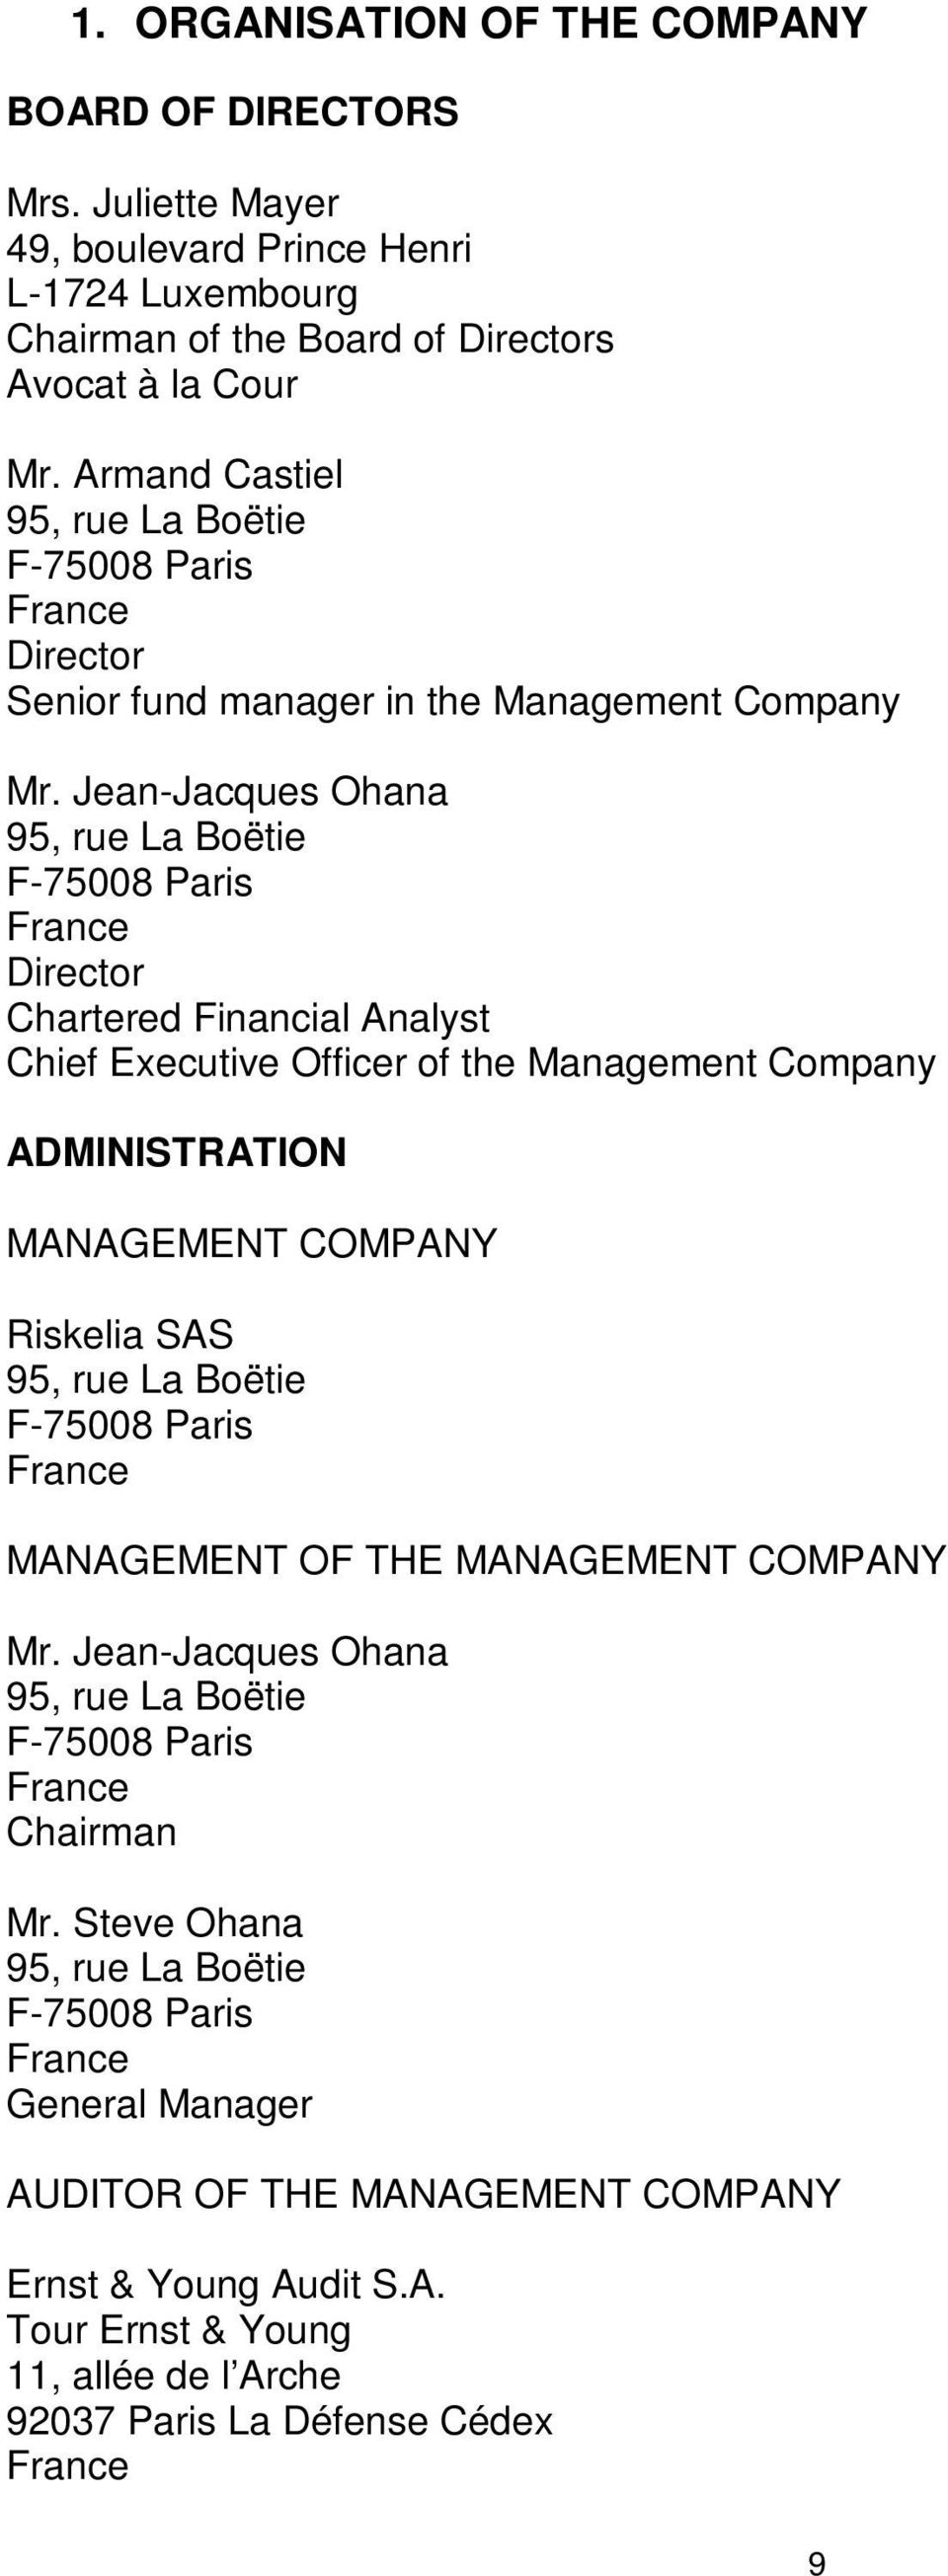 Jean-Jacques Ohana 95, rue La Boëtie F-75008 Paris France Director Chartered Financial Analyst Chief Executive Officer of the Management Company ADMINISTRATION MANAGEMENT COMPANY Riskelia SAS 95, rue